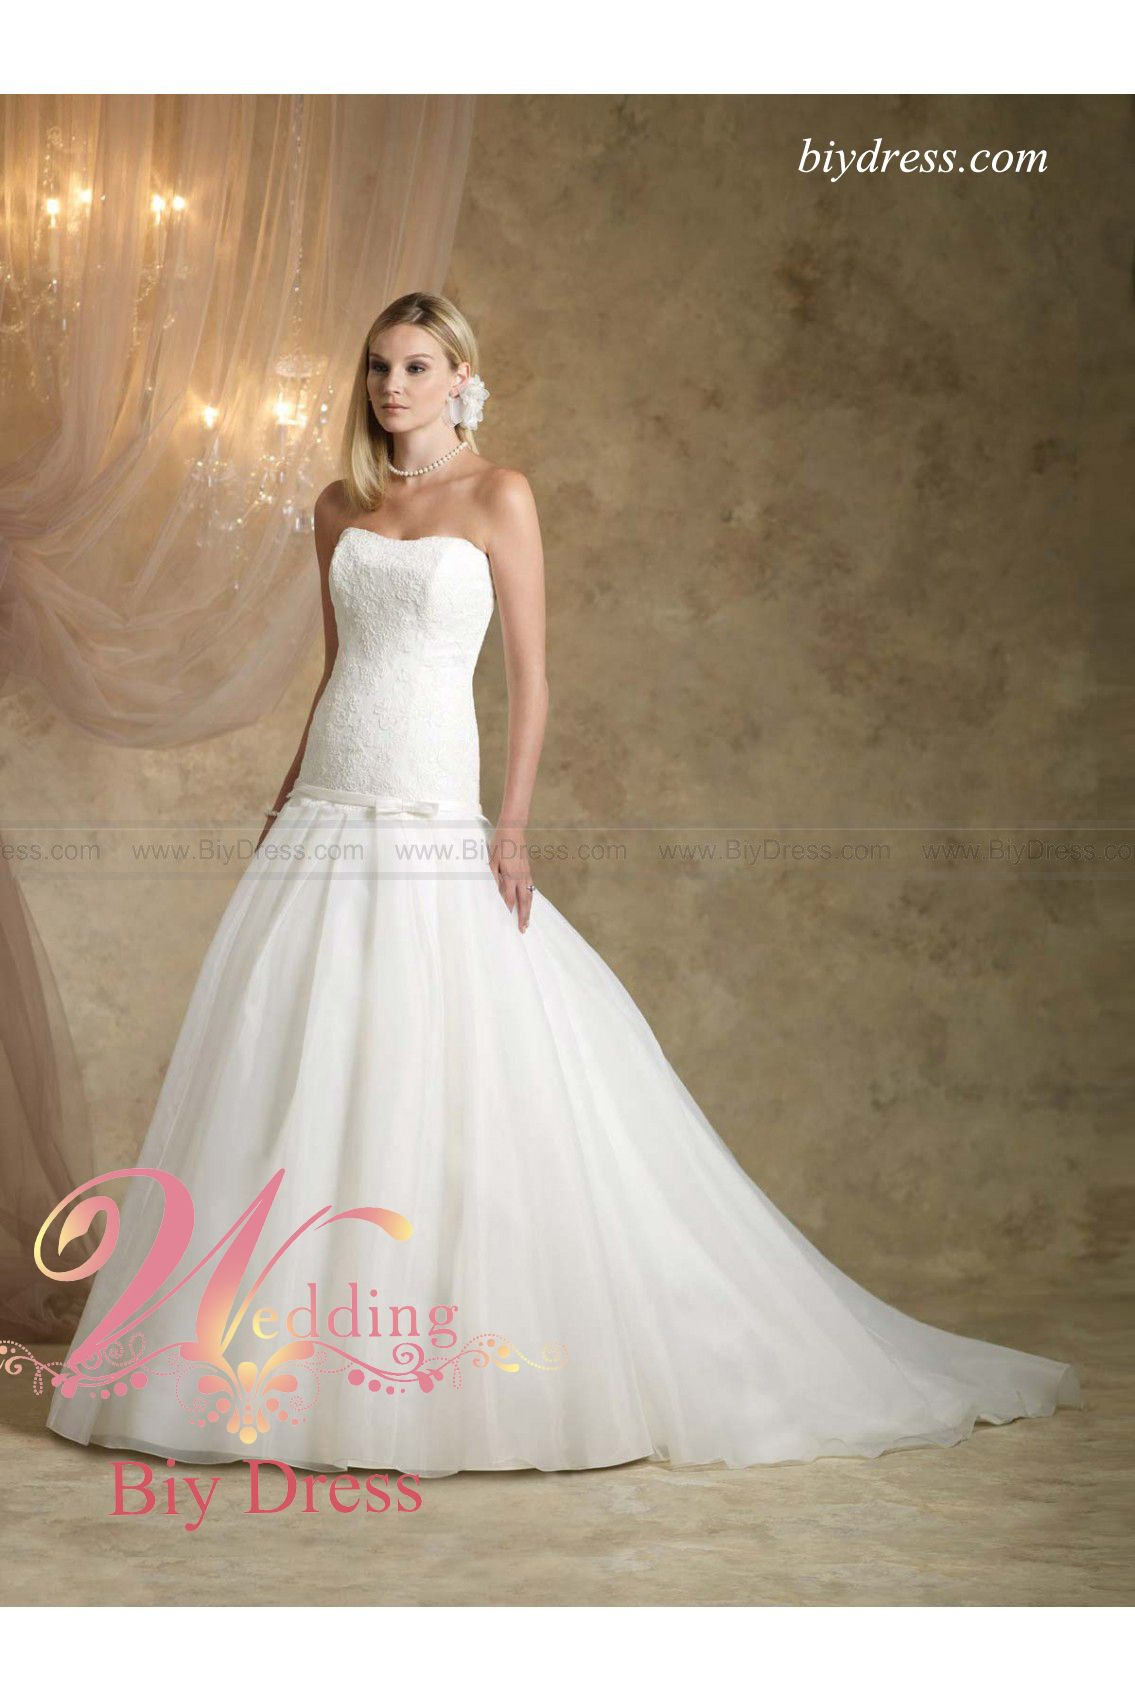 Southern style wedding dresses  Style KI  Southern Heritage  Ball Gown Wedding Dresses